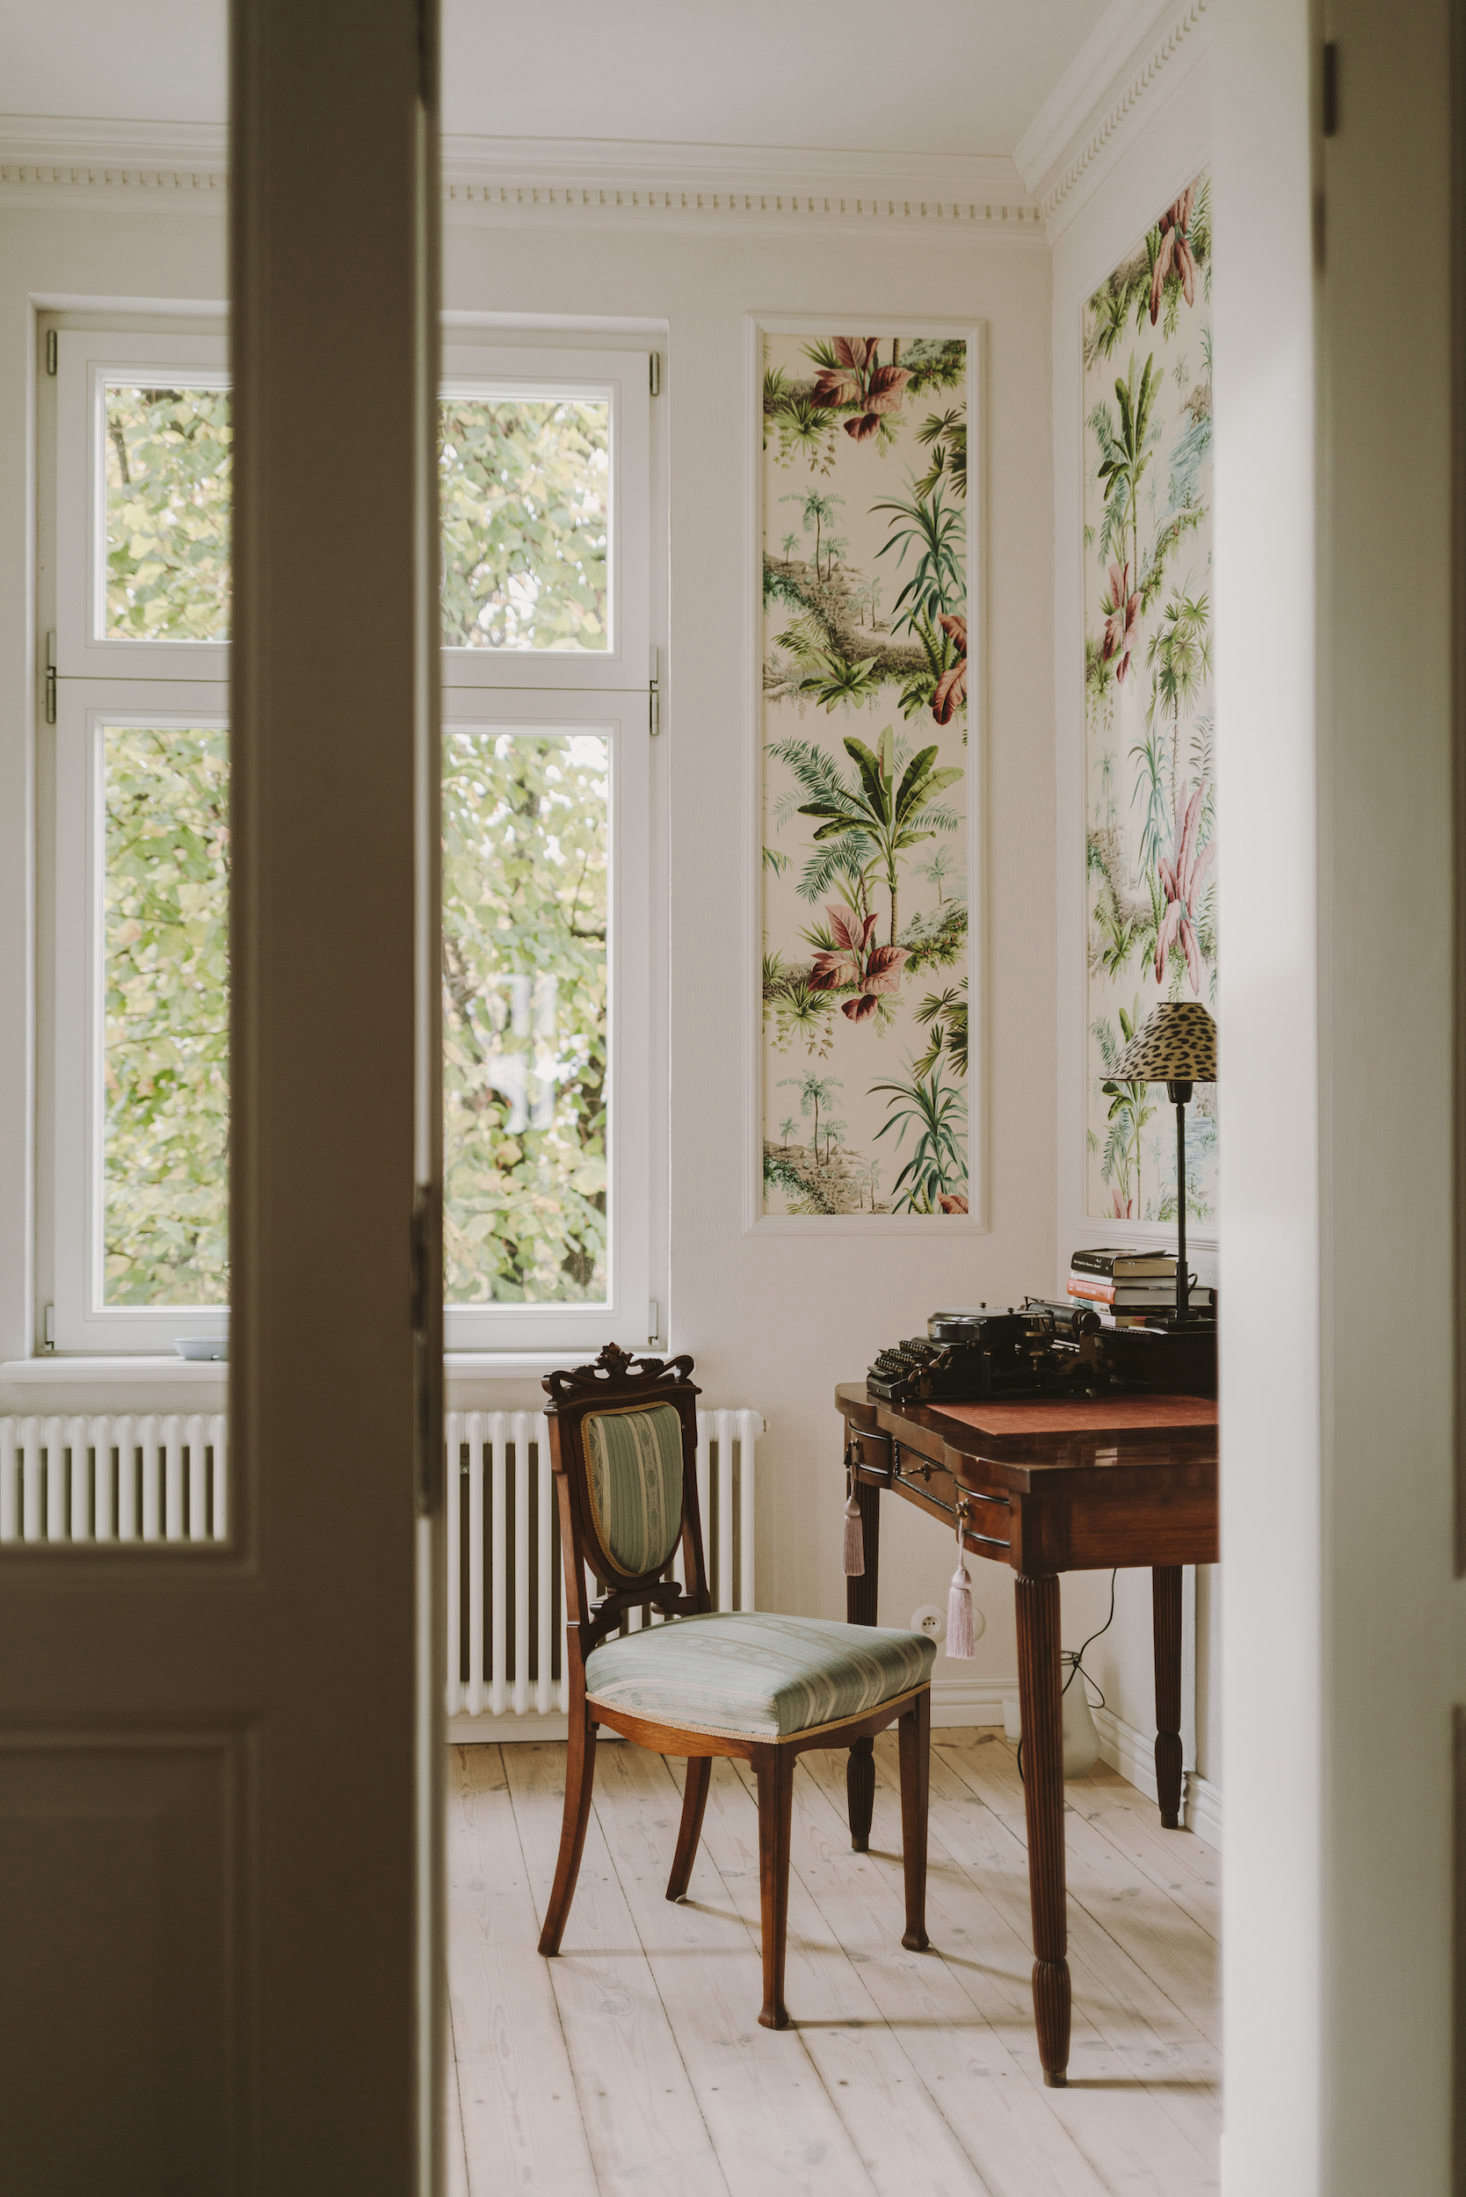 In a departure from the pale walls elsewhere in the home, the office features tropical &#8